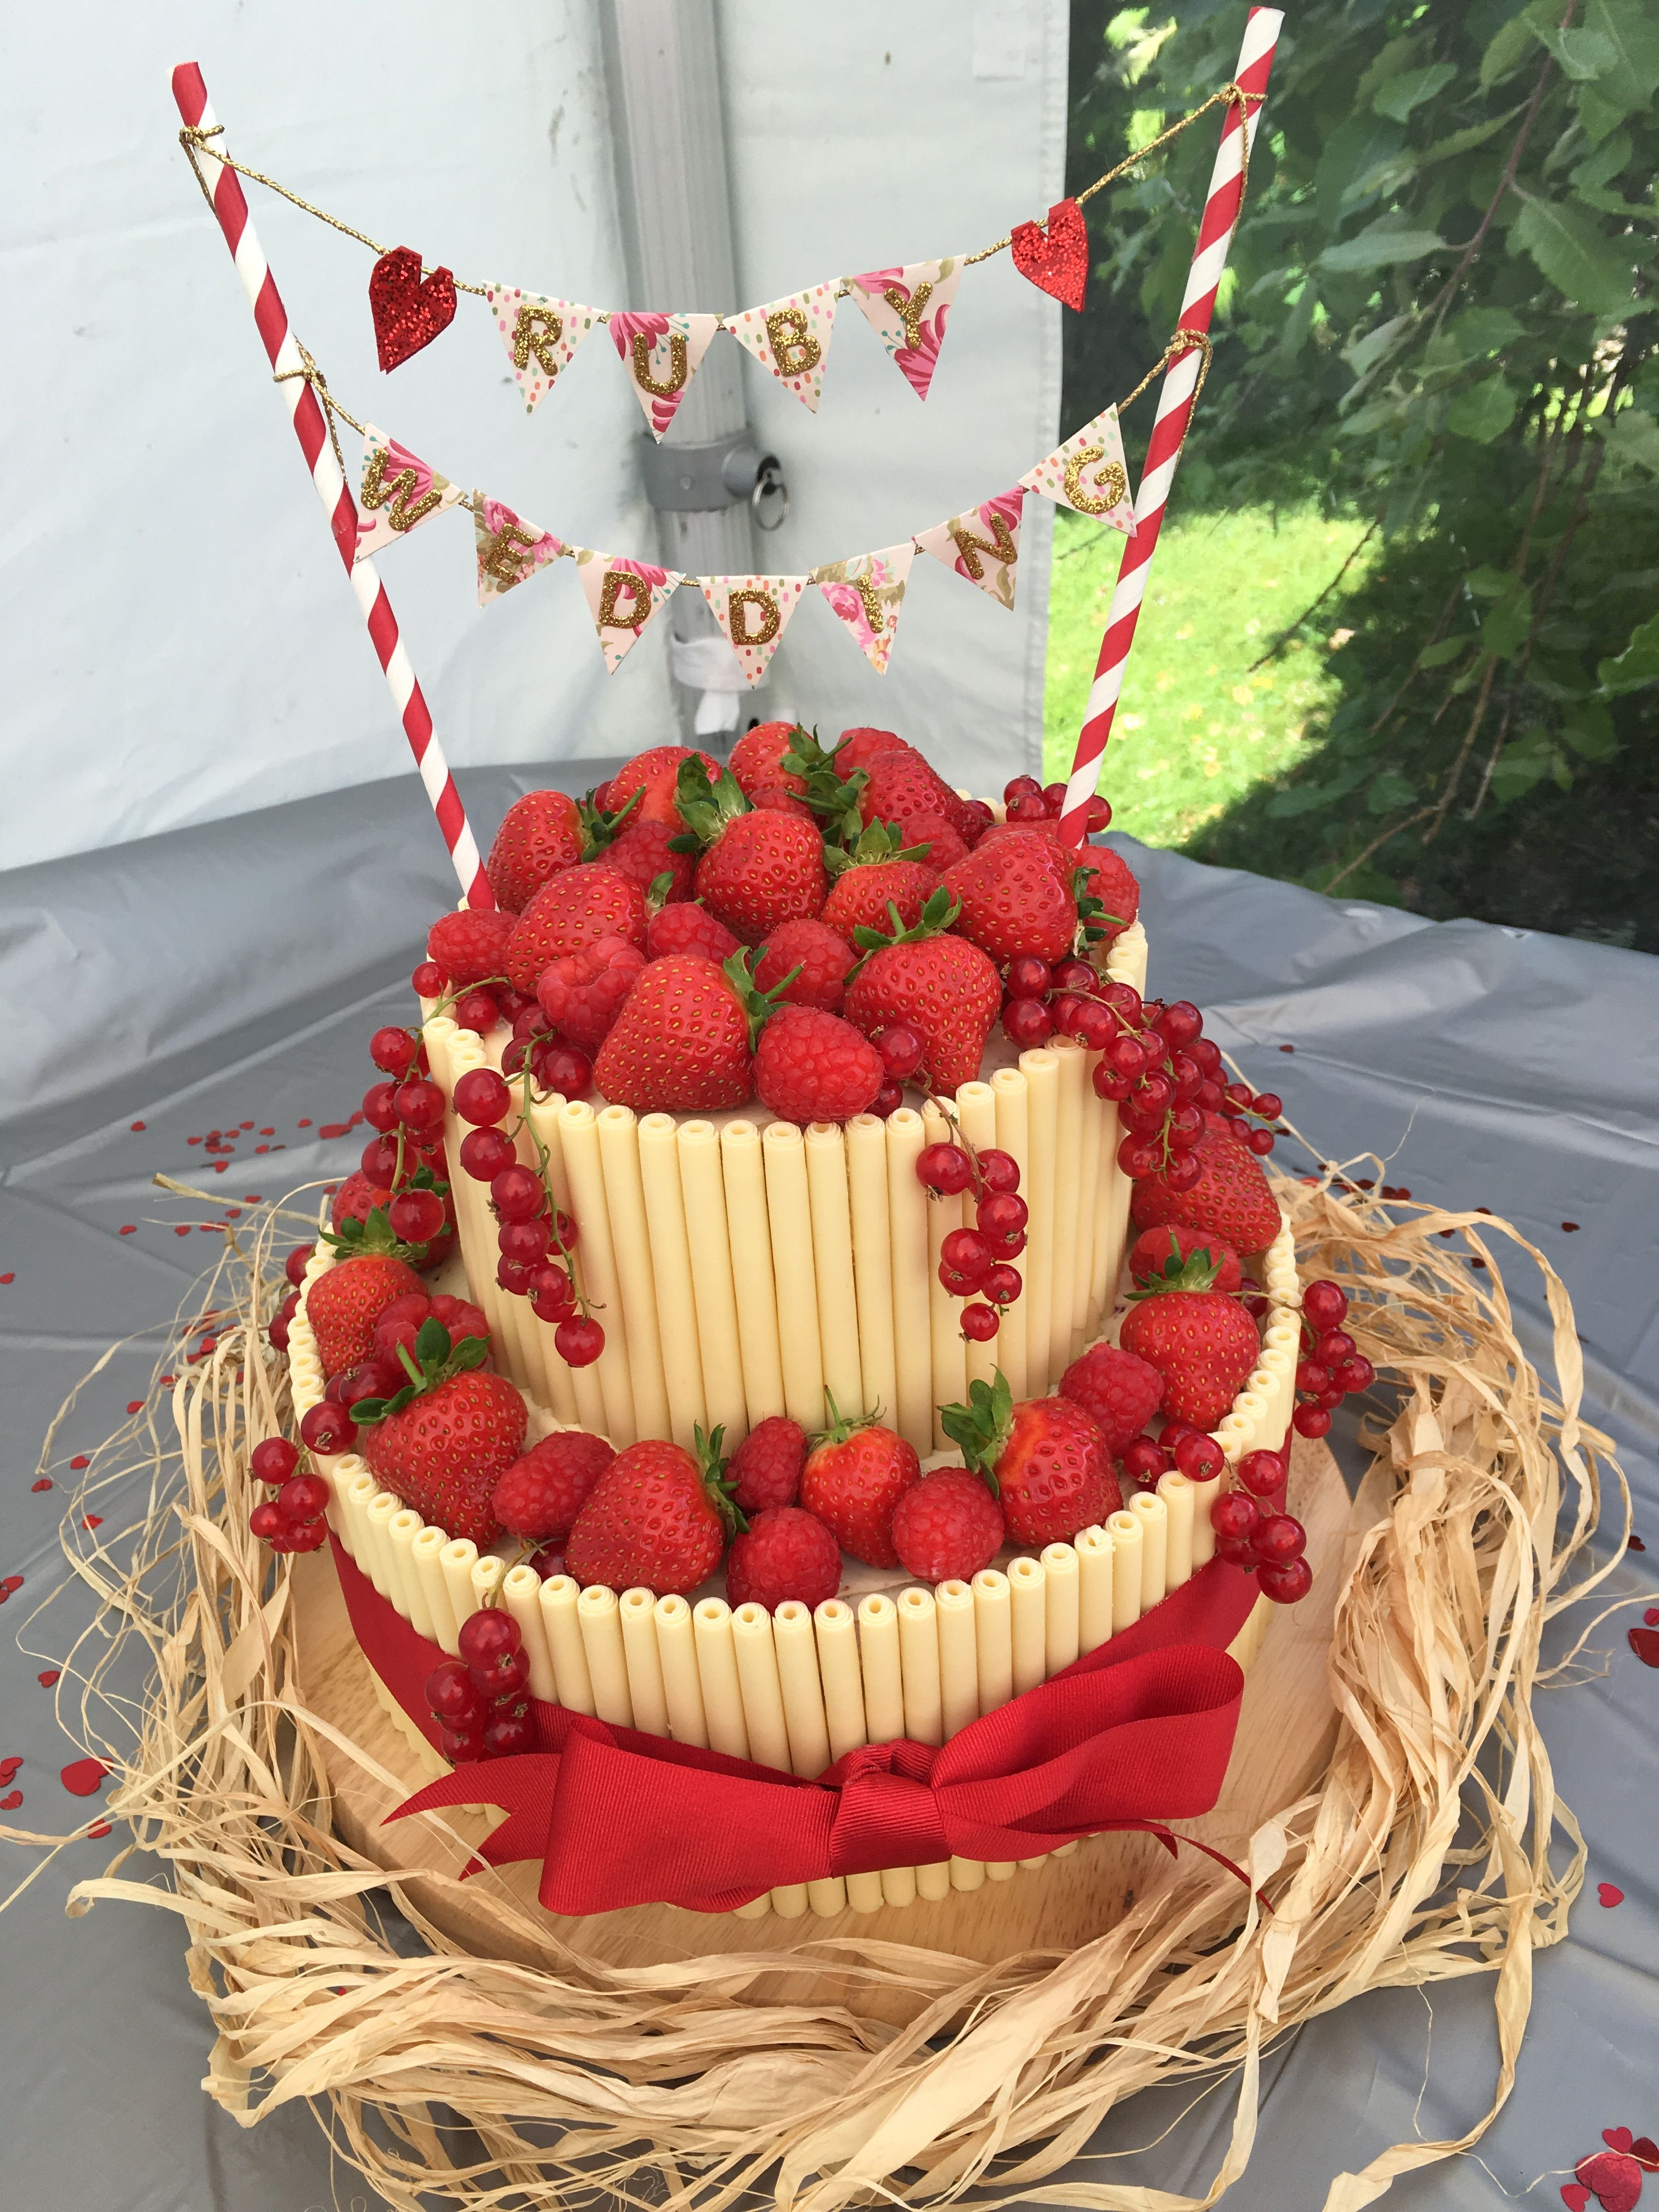 Vintage Shabby Chic Classy Ruby Wedding Anniversary Red Velvet Cake With Fruits White Chocolate Cigarillos And Homemade Banner